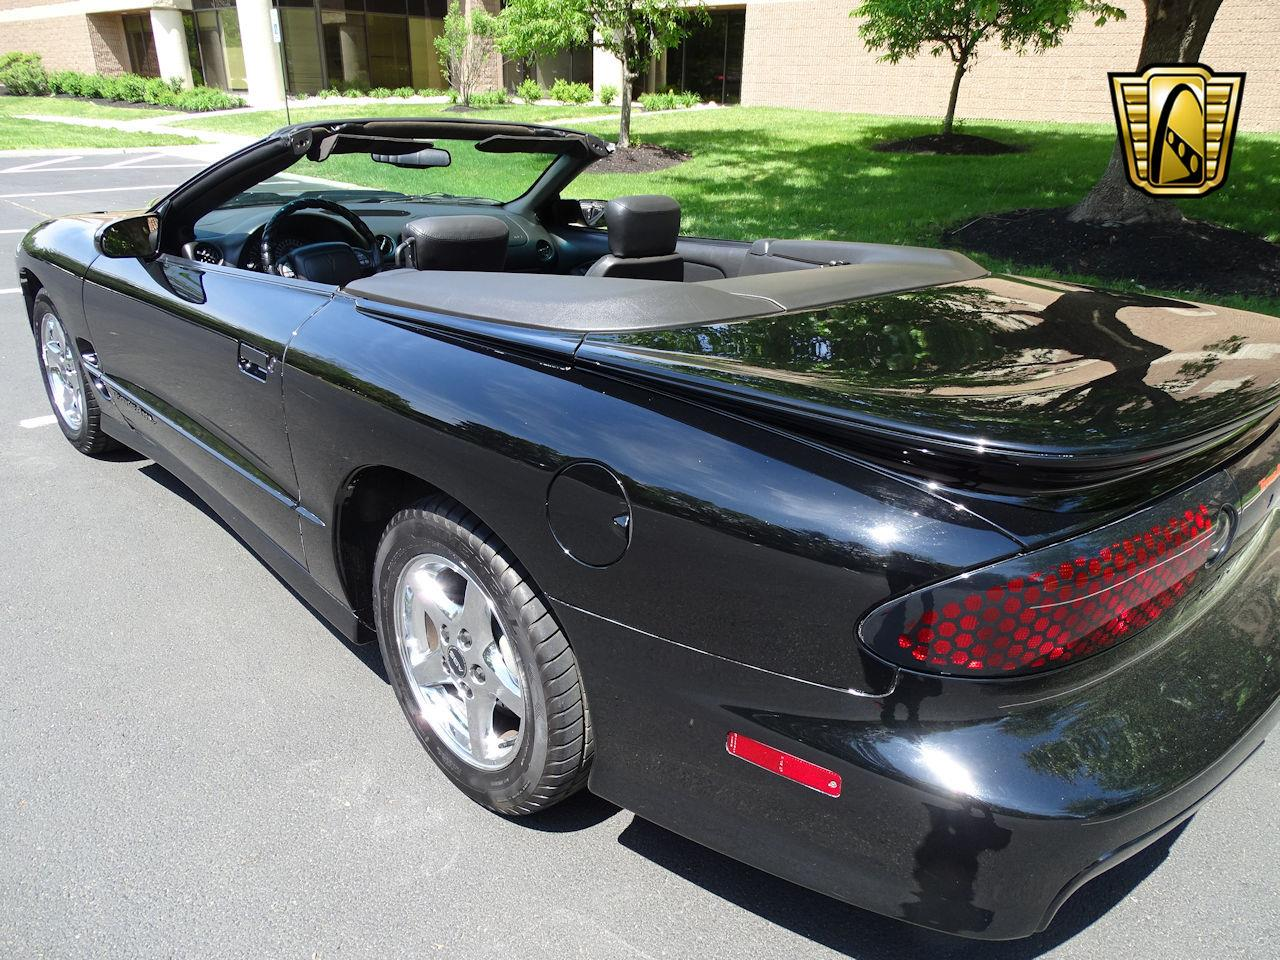 Large Picture of 2000 Pontiac Firebird - $17,595.00 Offered by Gateway Classic Cars - Philadelphia - M5ID